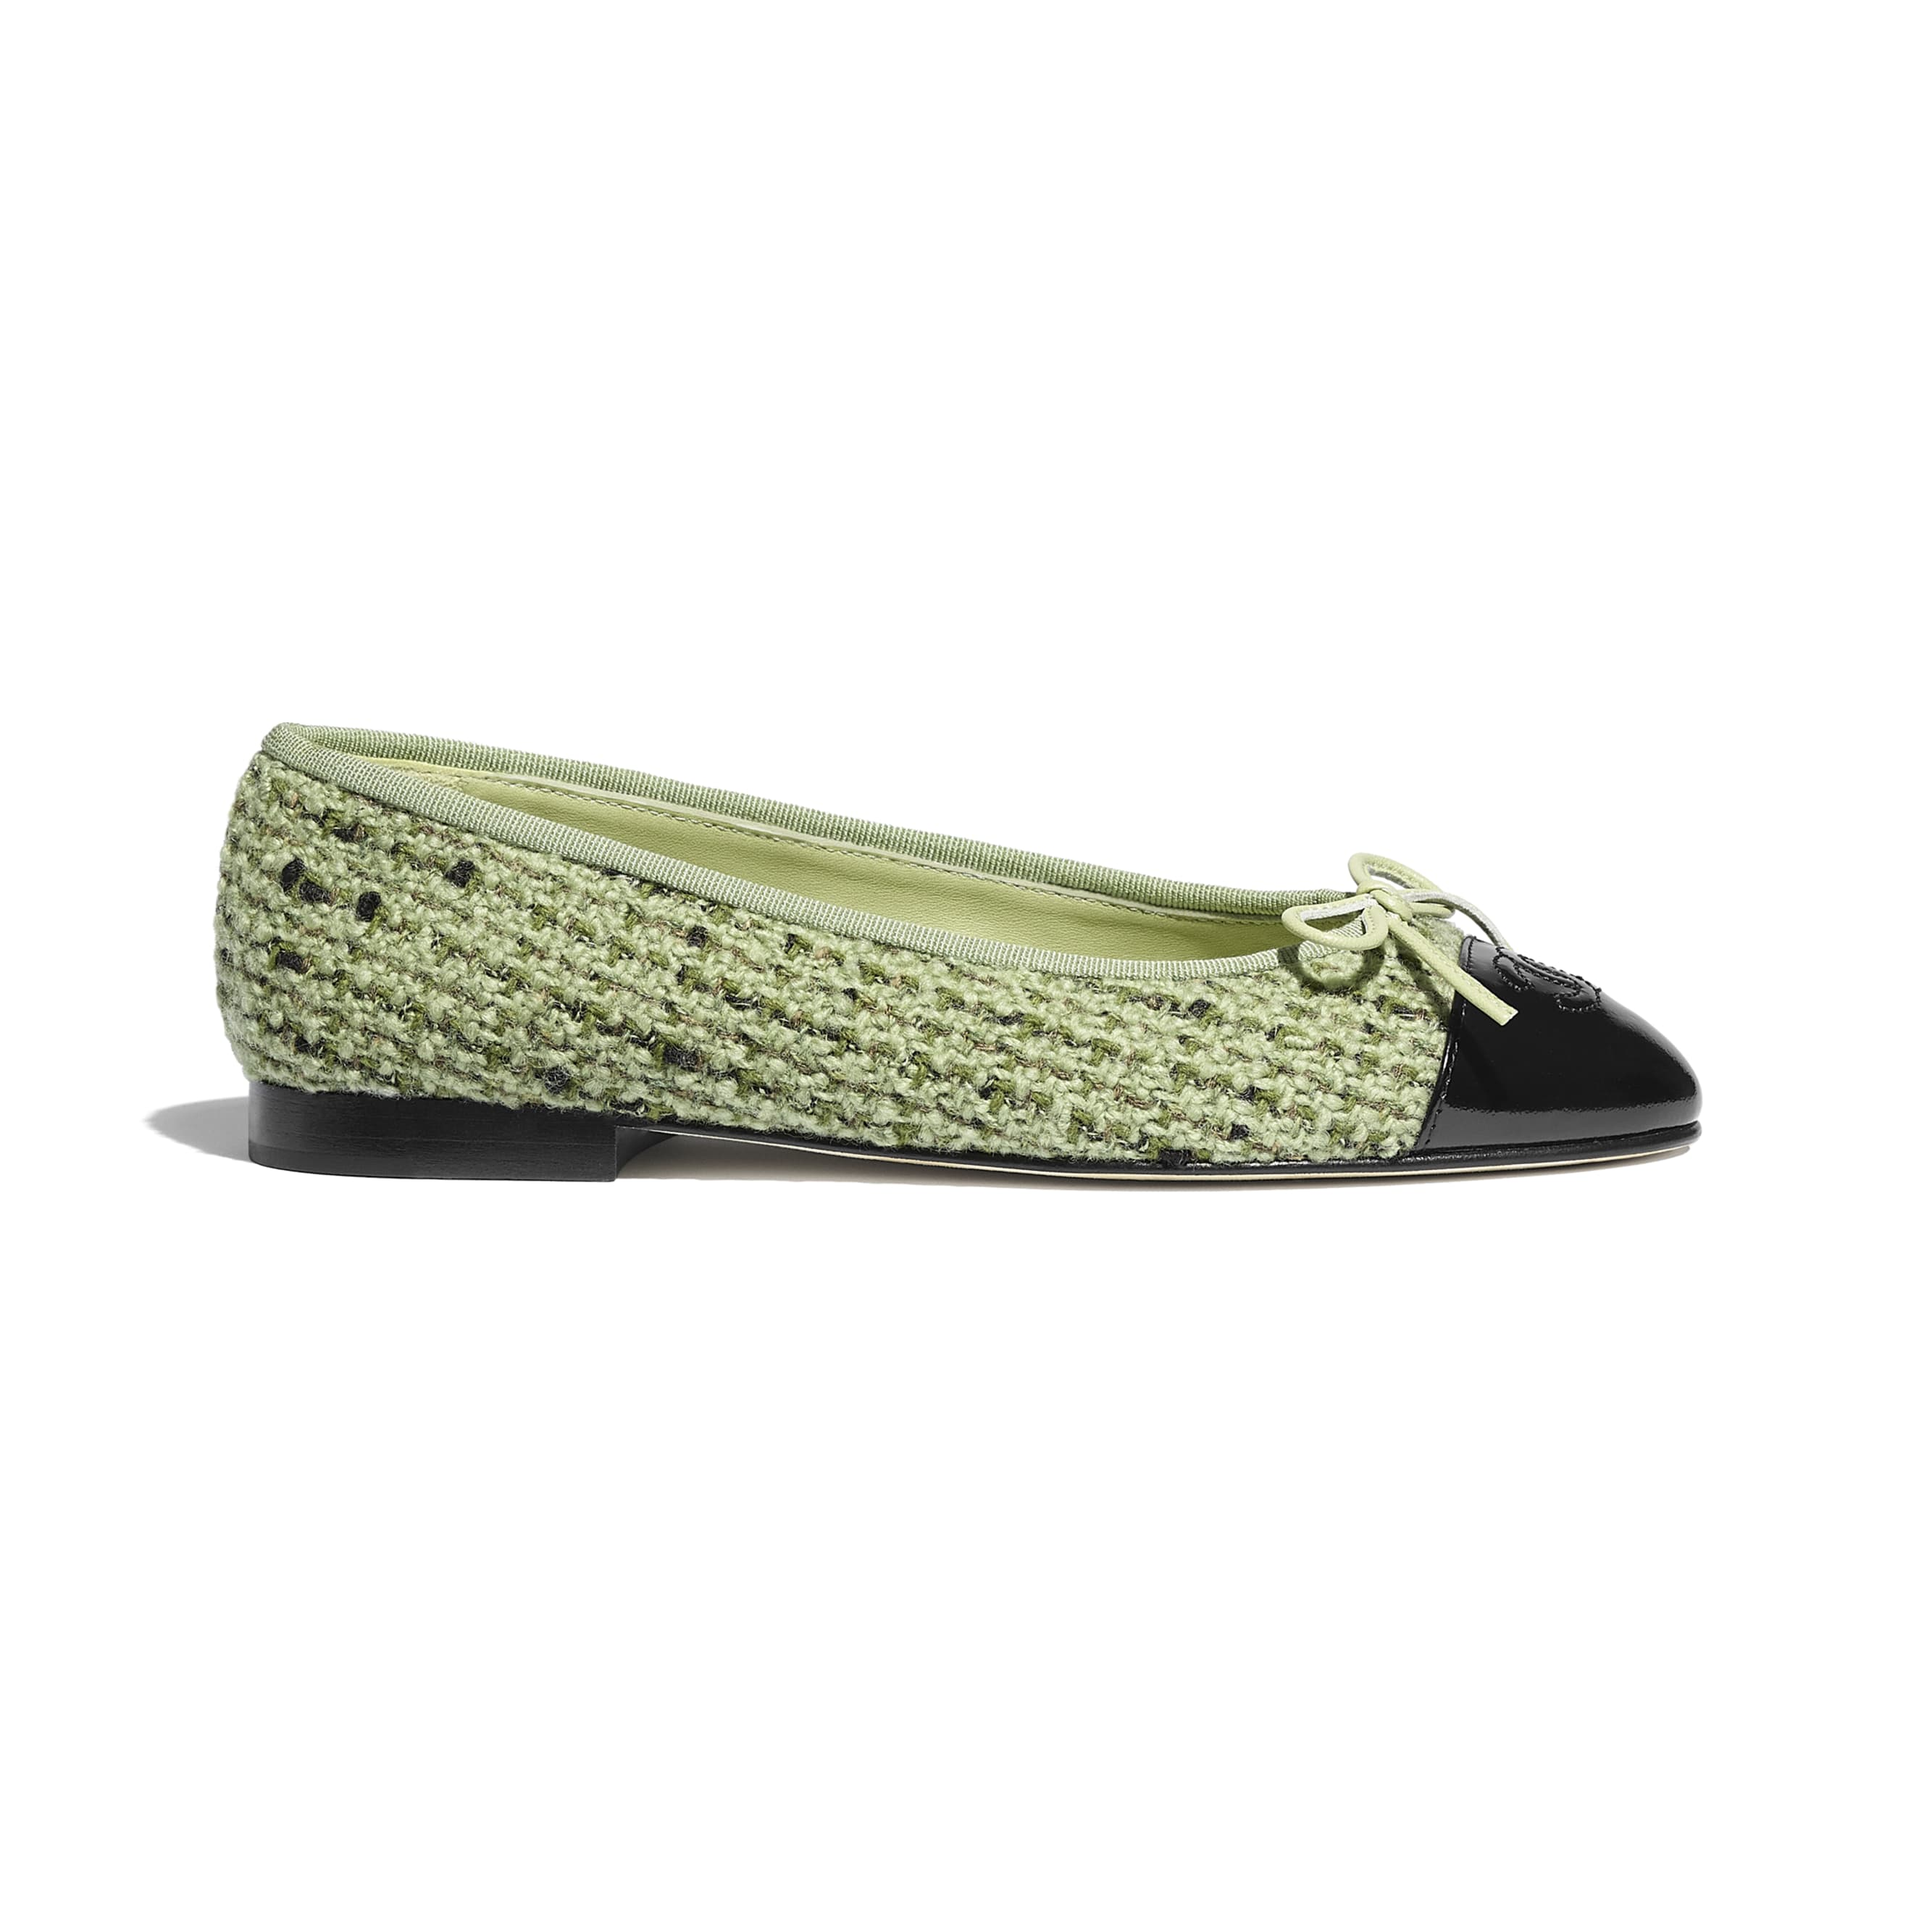 Flats - Green & Black - Tweed & Calfskin - CHANEL - Default view - see standard sized version